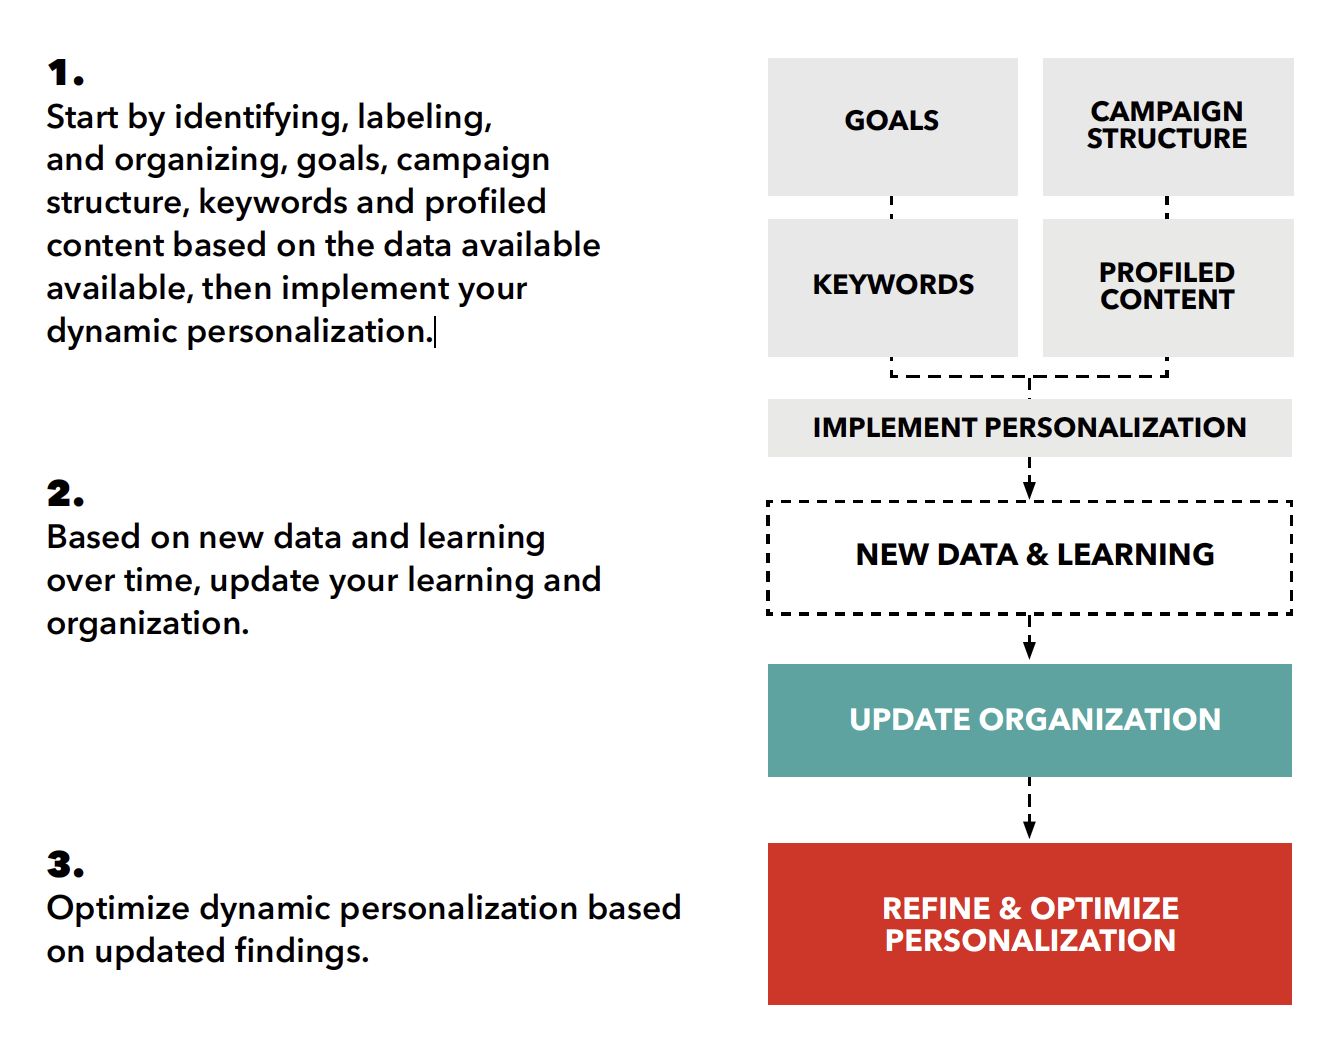 This diagram illustrates the ideal workflow for launching, maturing, and testing a personalization program.